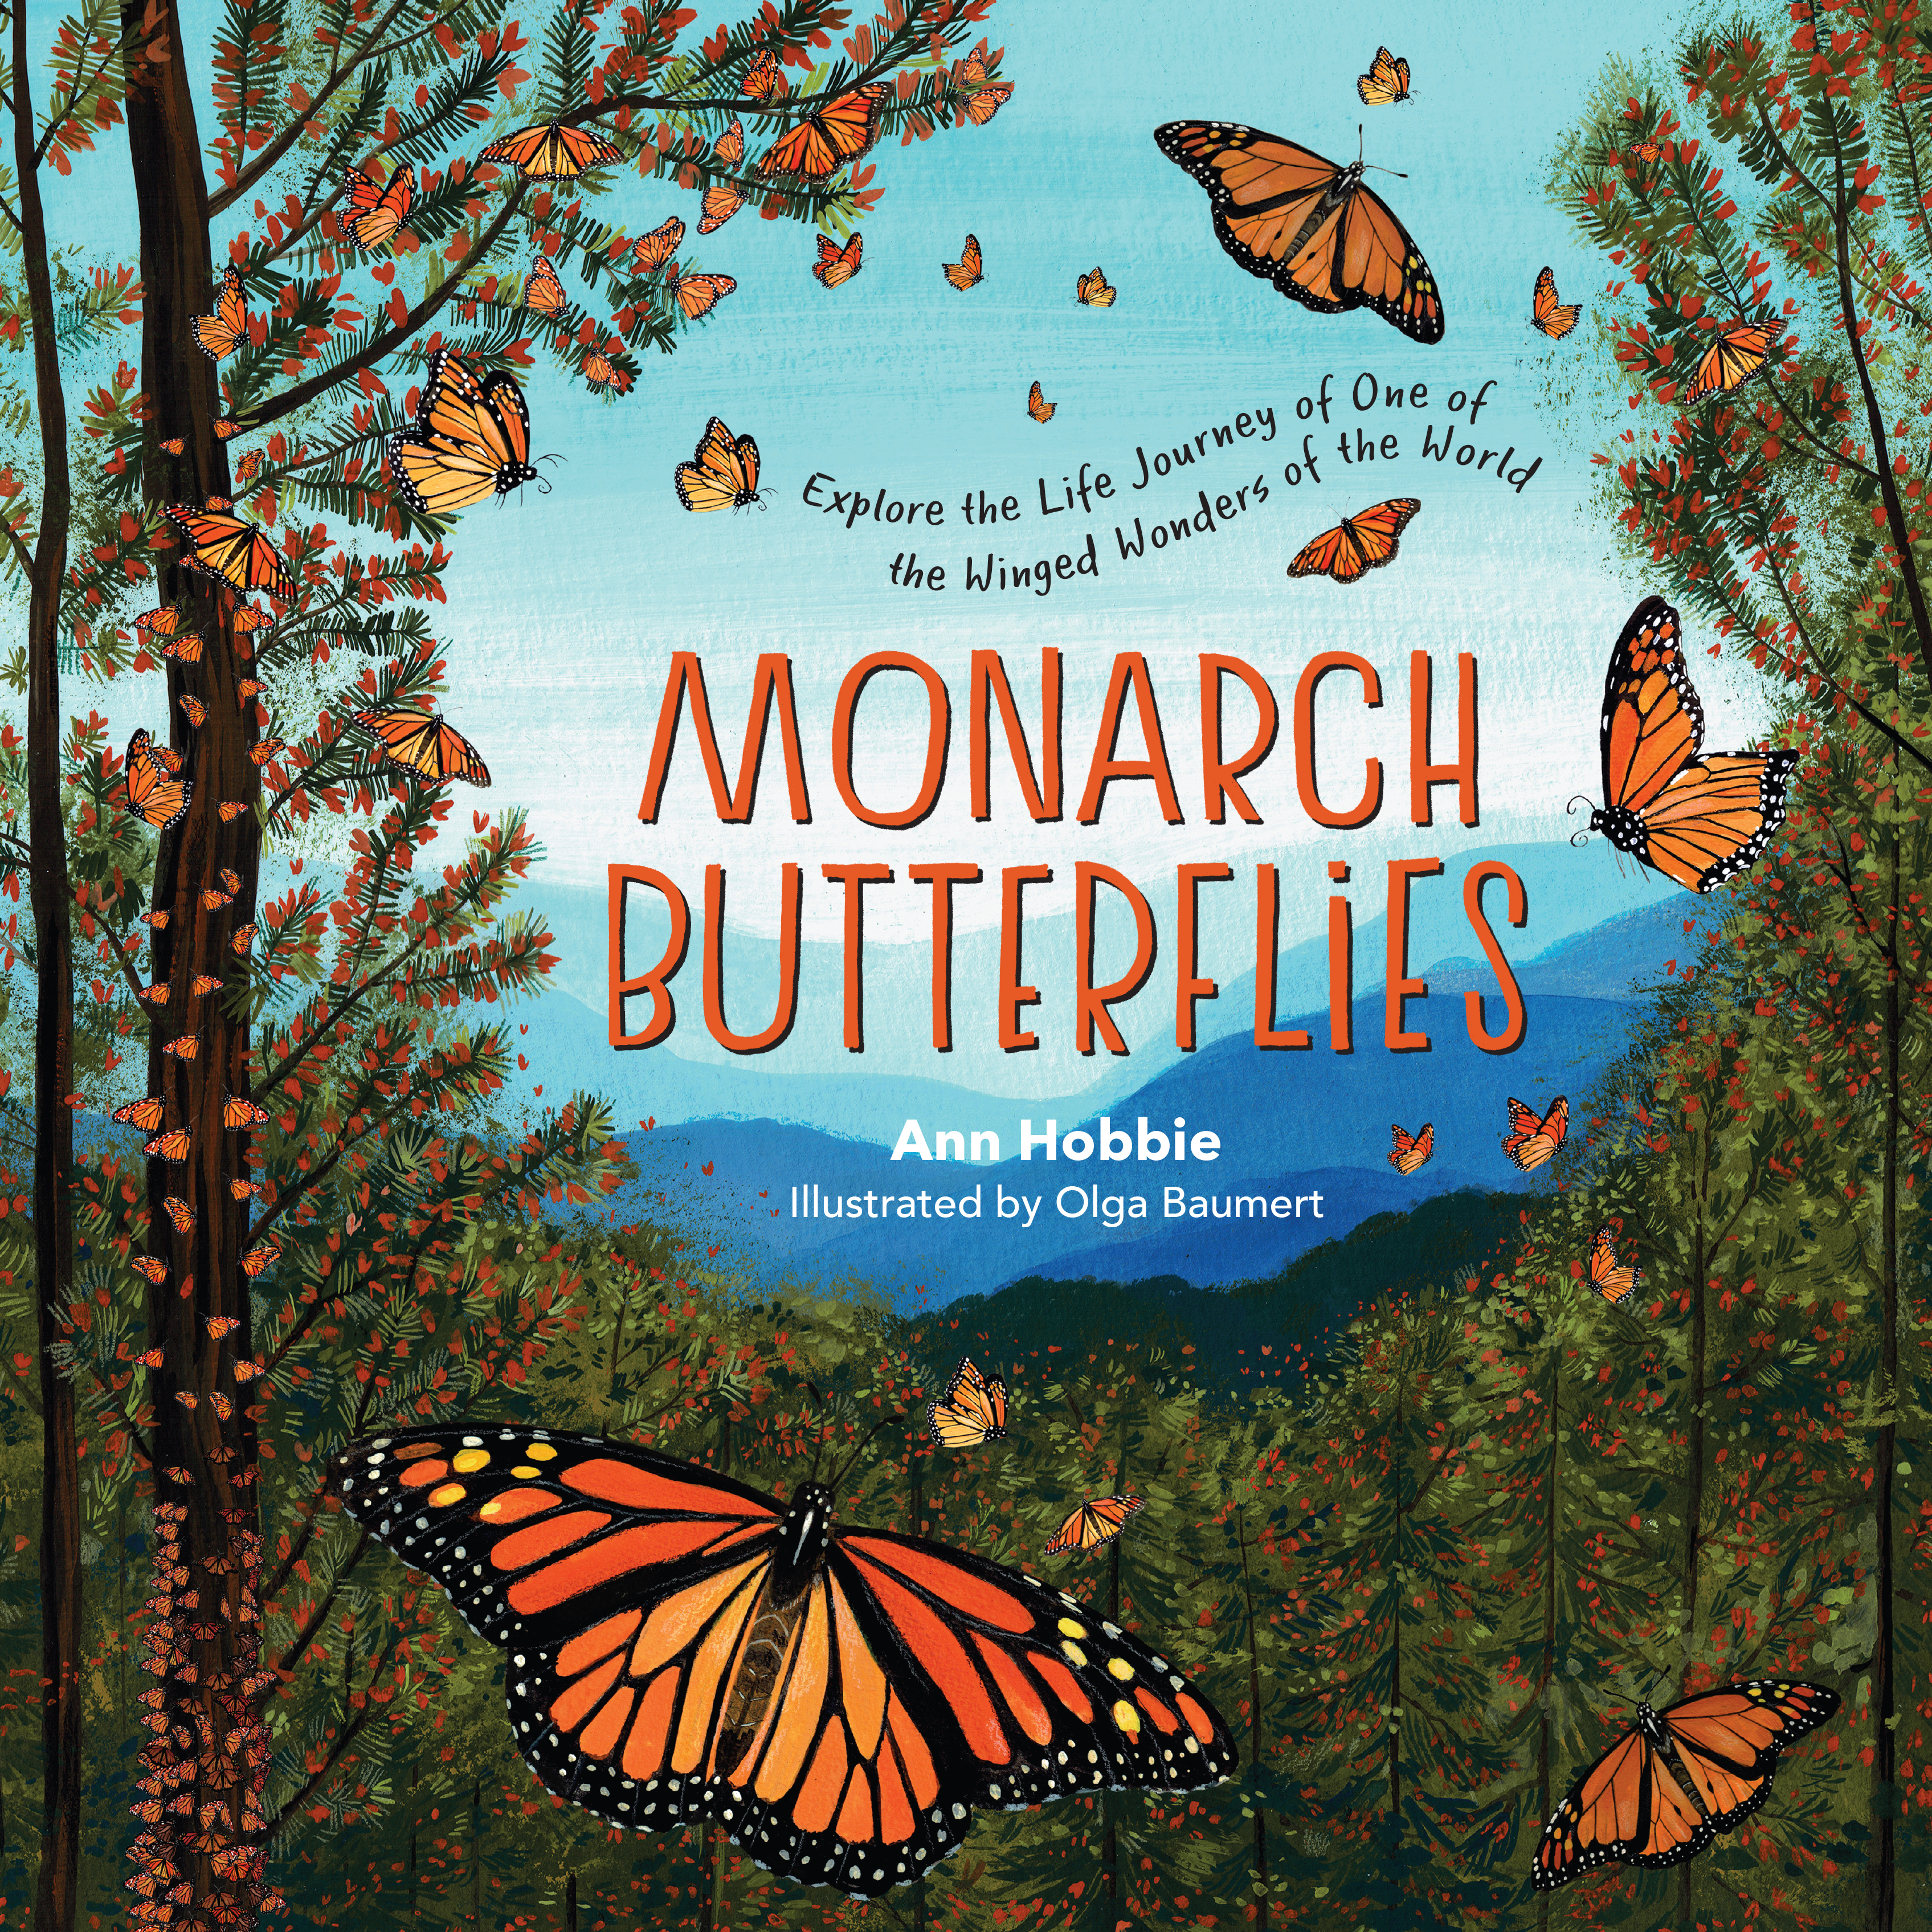 Monarch Butterflies Explore the Life Journey of One of the Winged Wonders of the World - Ann Hobbie